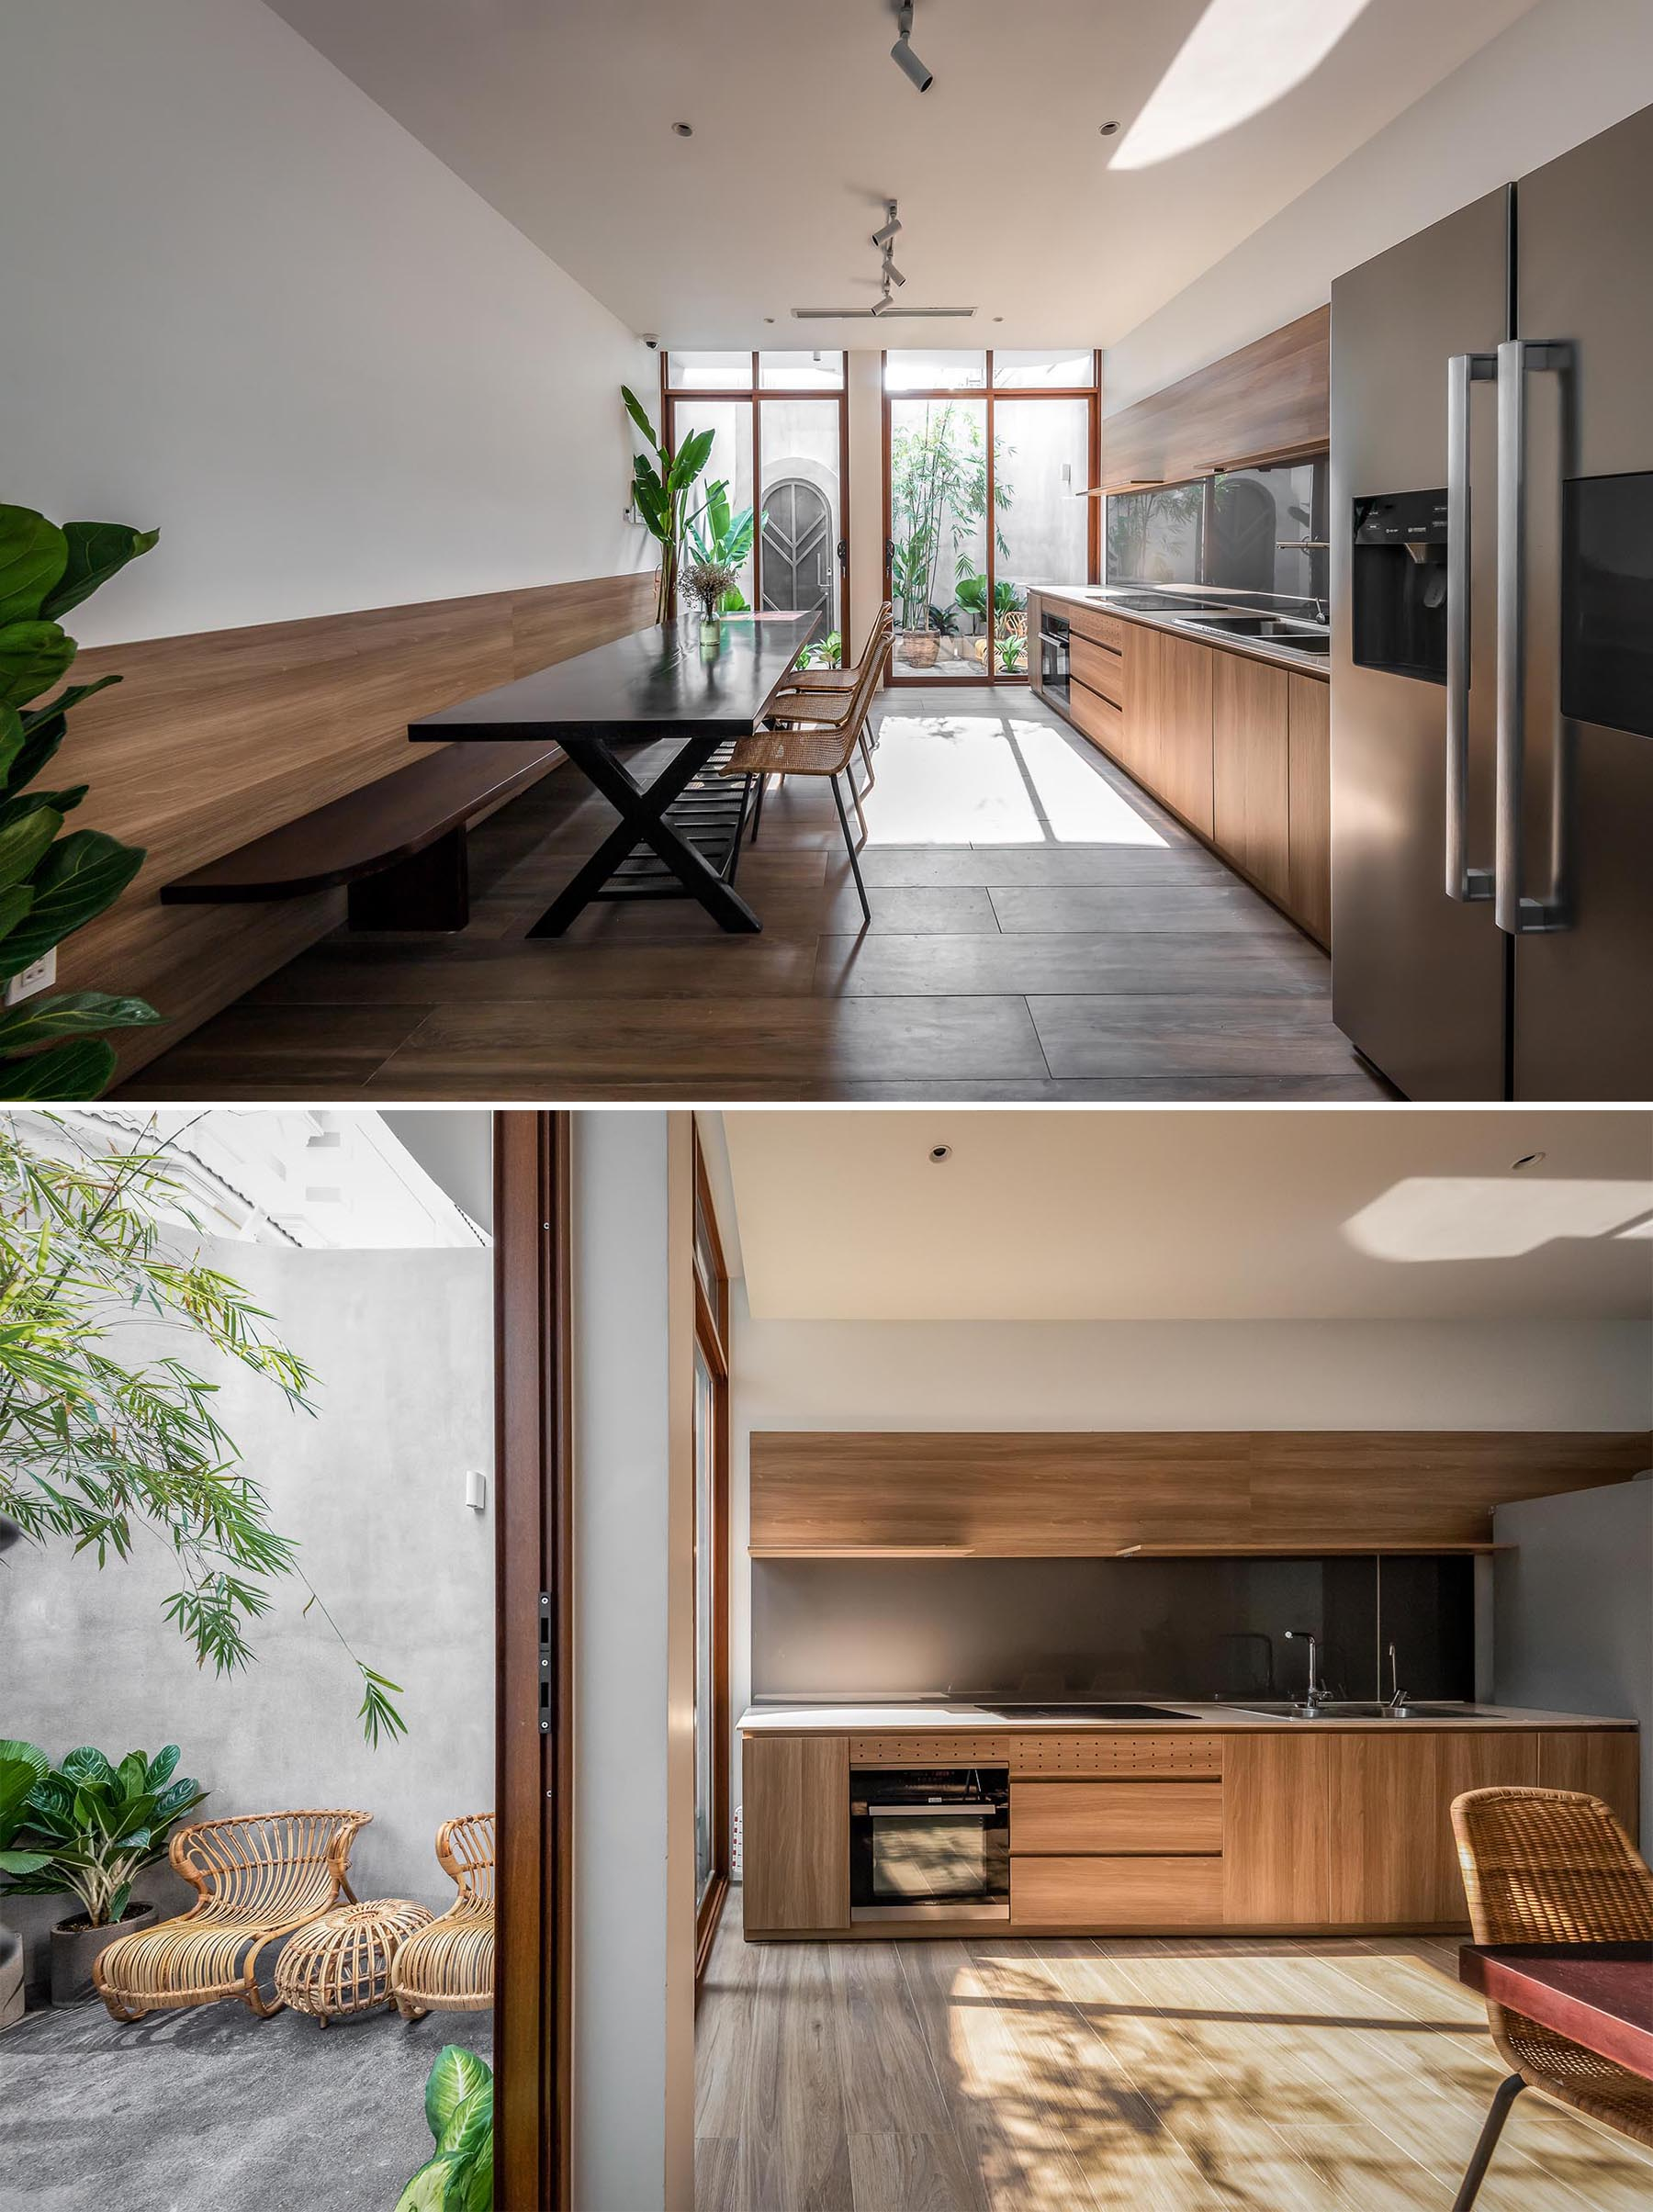 An open plan dining room and kitchen, where wood elements, like the dining bench and kitchen cabinets, complement the natural greenery of the indoor plants.